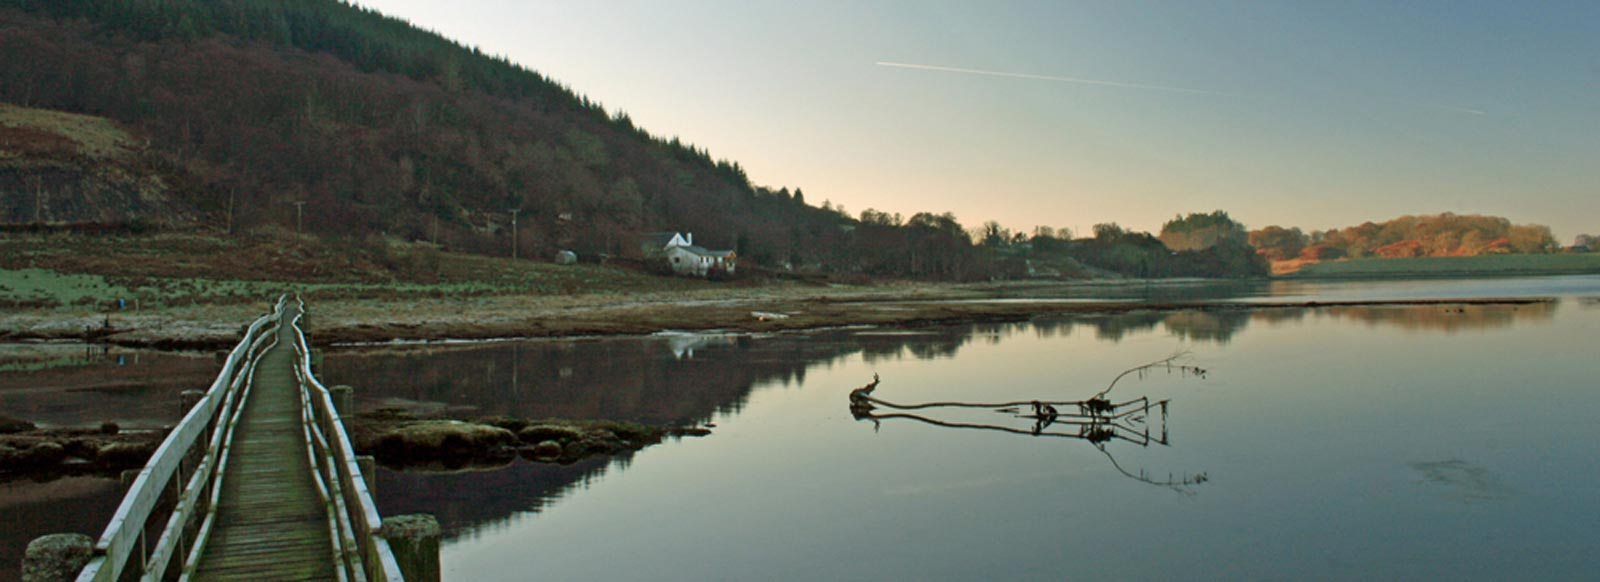 Images by Walking Appin